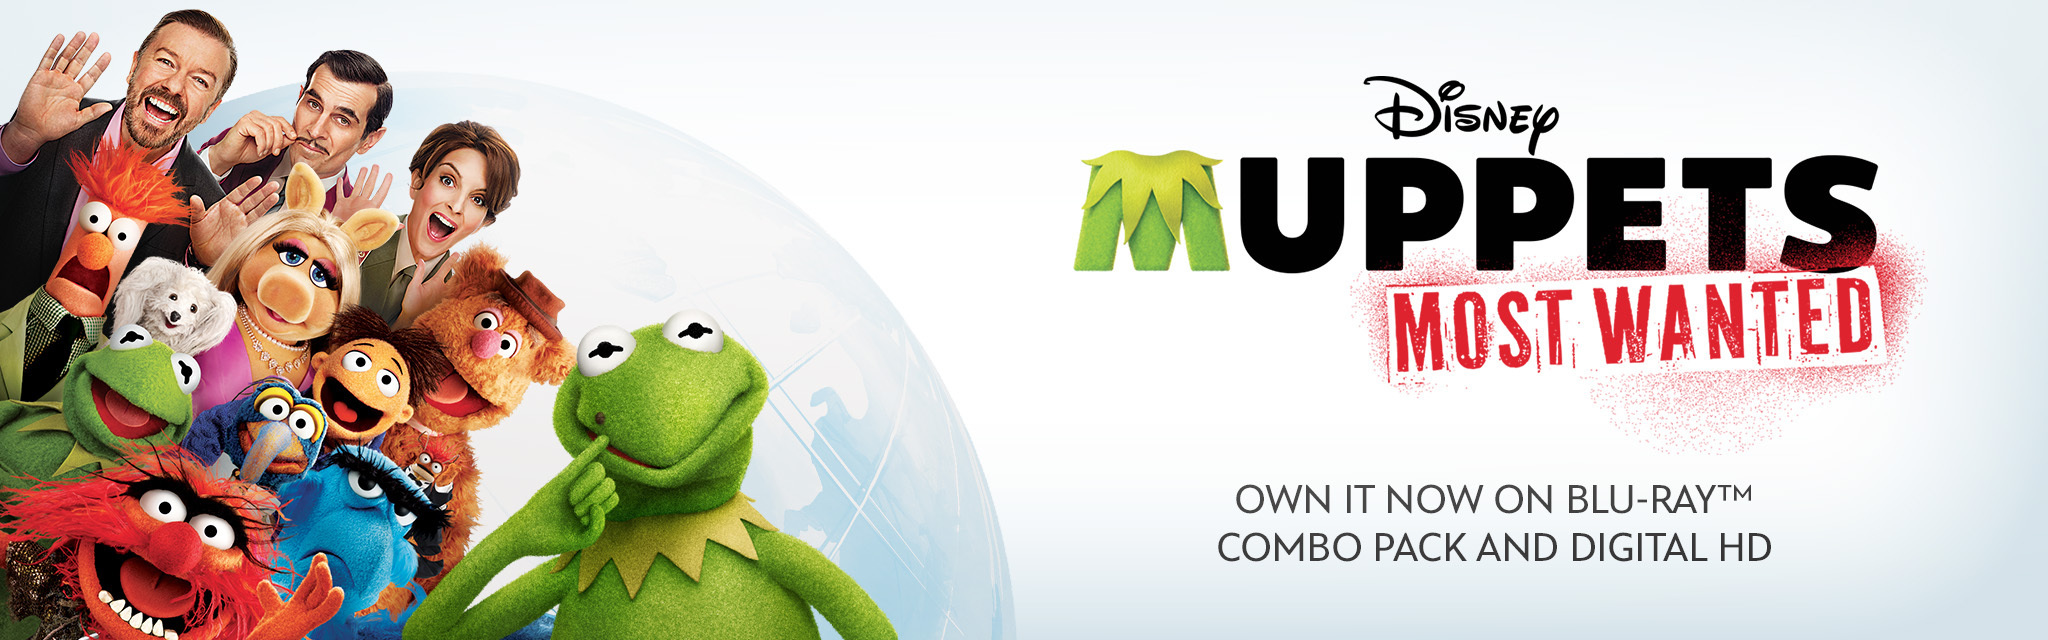 HQ Muppets Most Wanted Wallpapers | File 472.37Kb